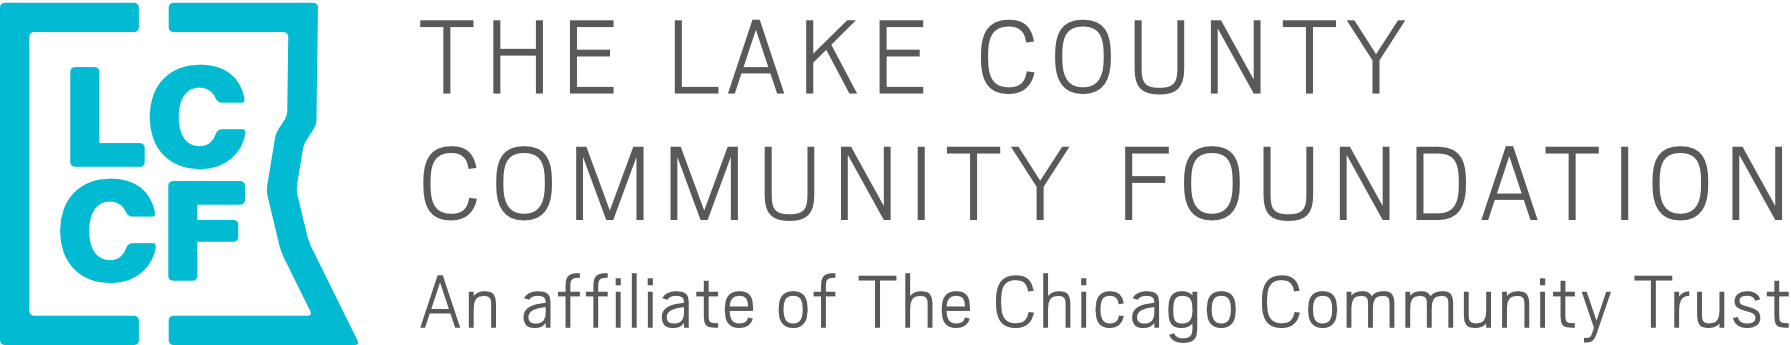 Lake County Community Foundation